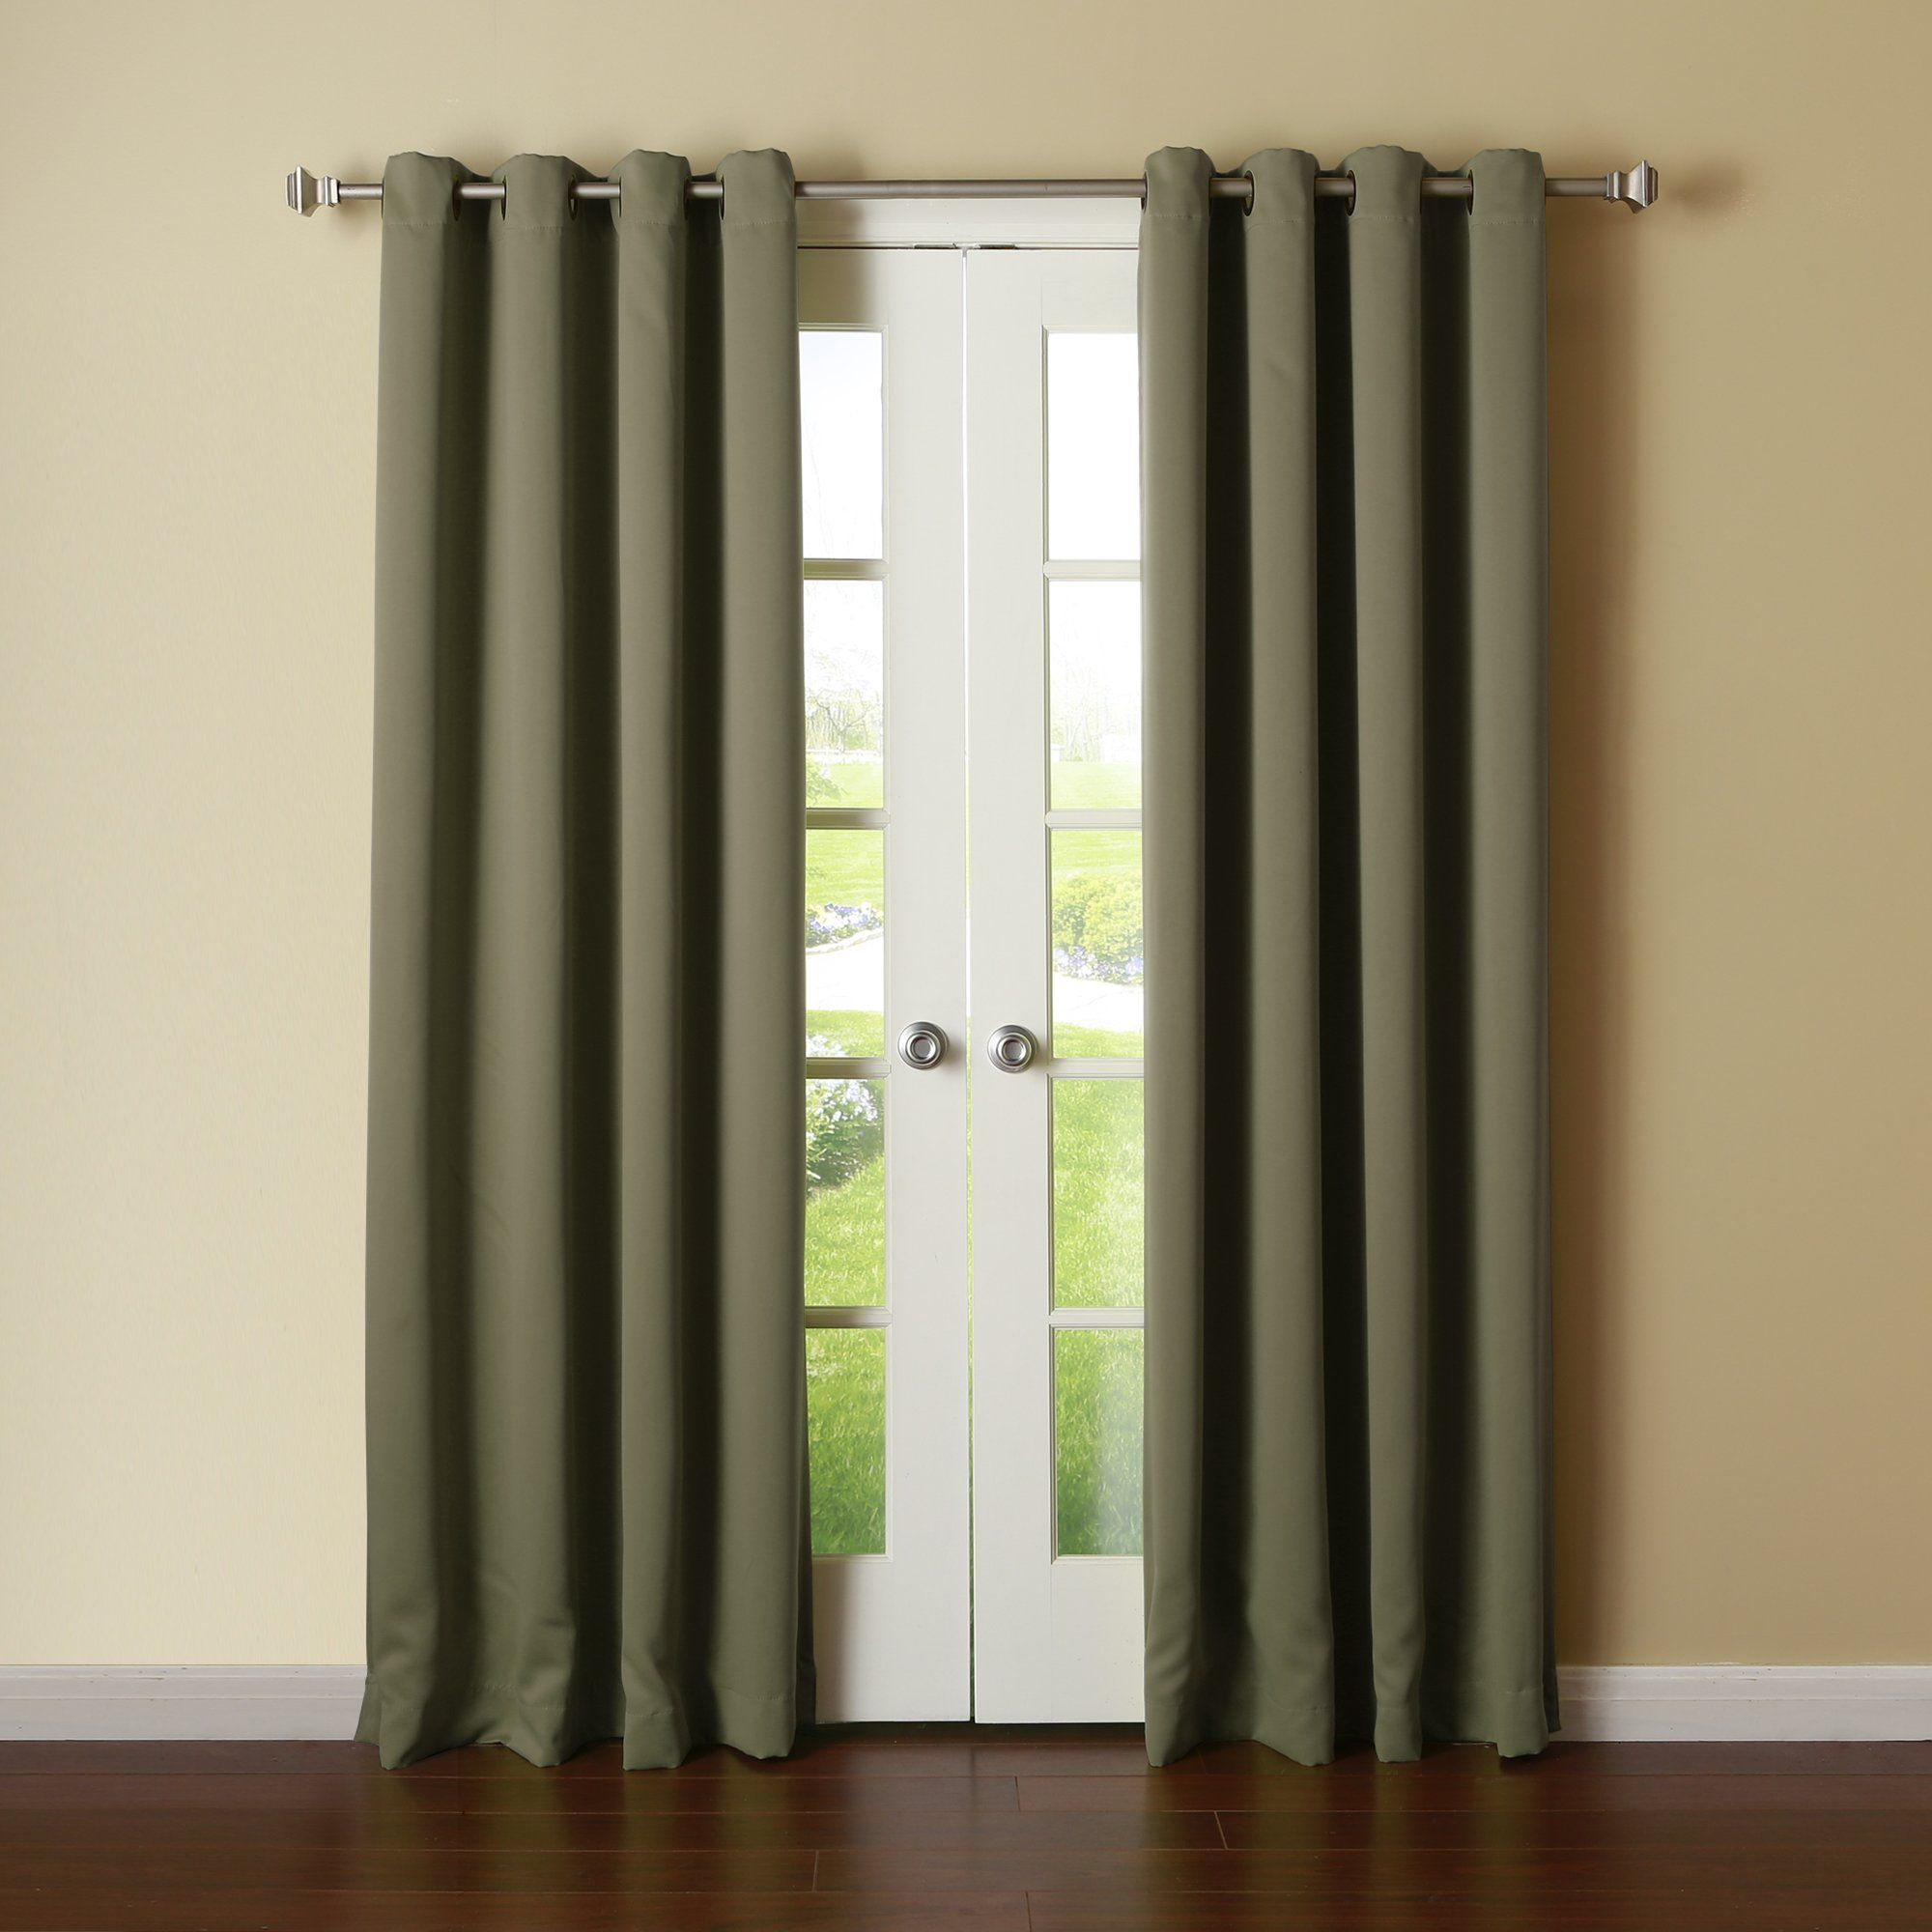 Marvelous Amazon.com   Best Home Fashion Thermal Insulated Blackout Curtains    Antique Bronze Grommet Top